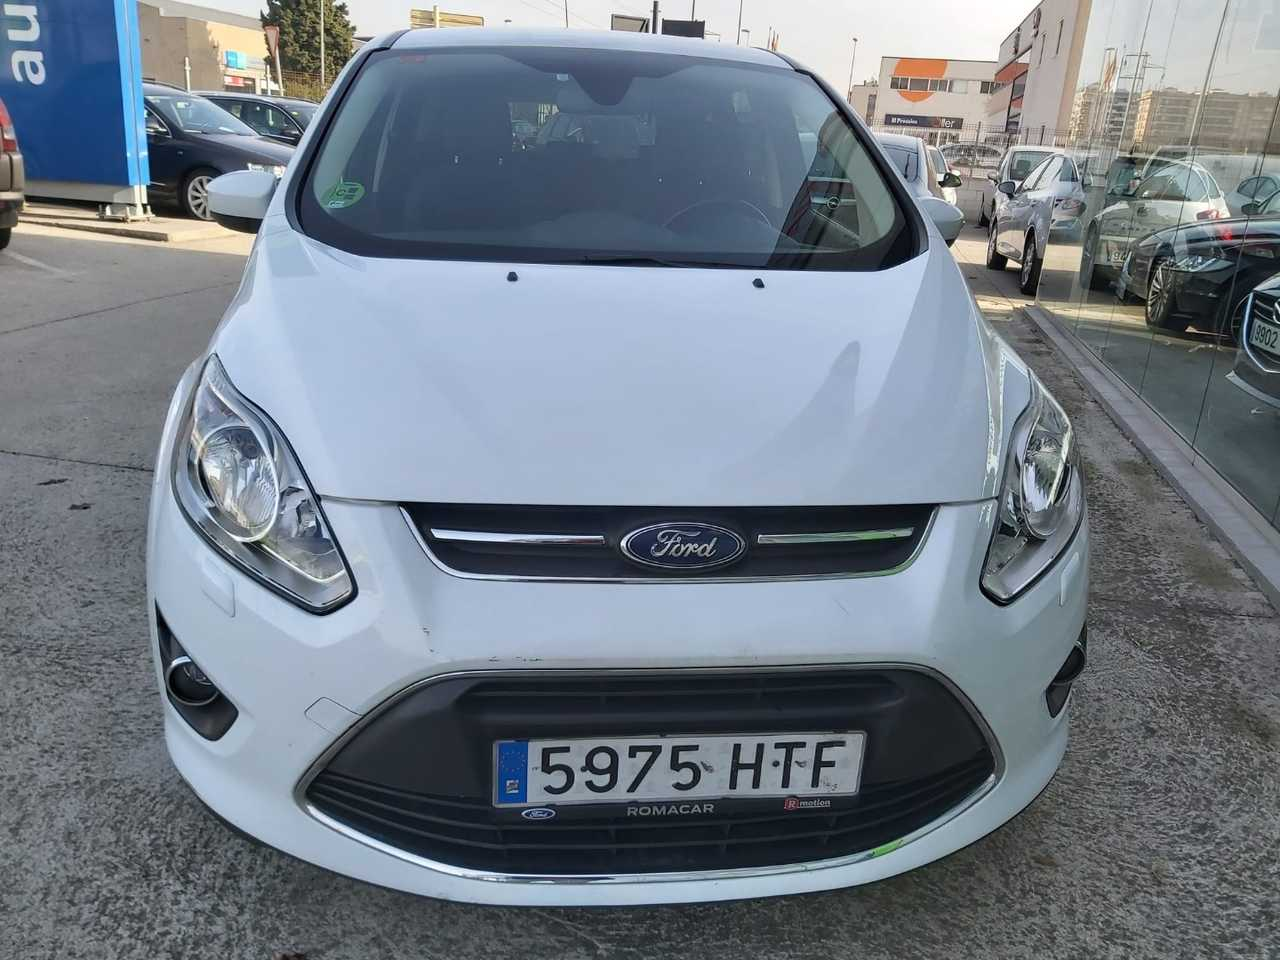 Ford C Max 1.0 EcoBoost 125 Trend   - Foto 1